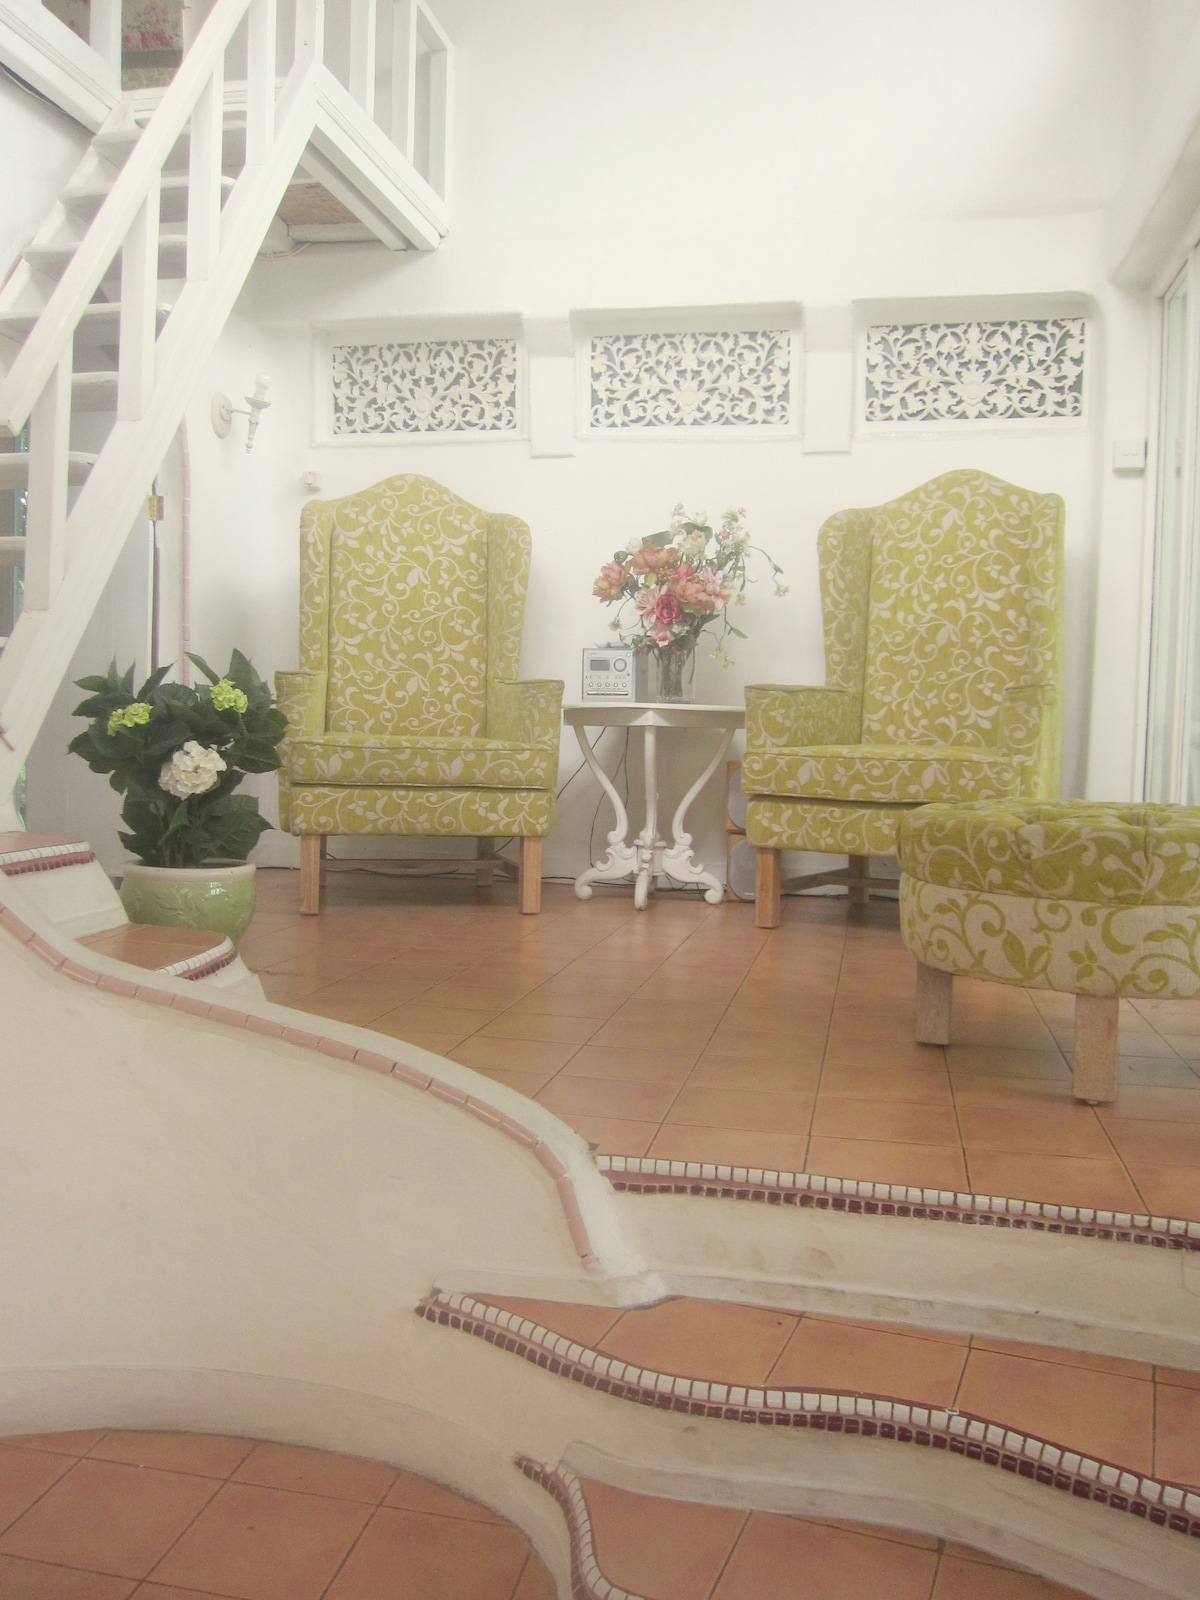 High back throne chairs in the light and airy foyer